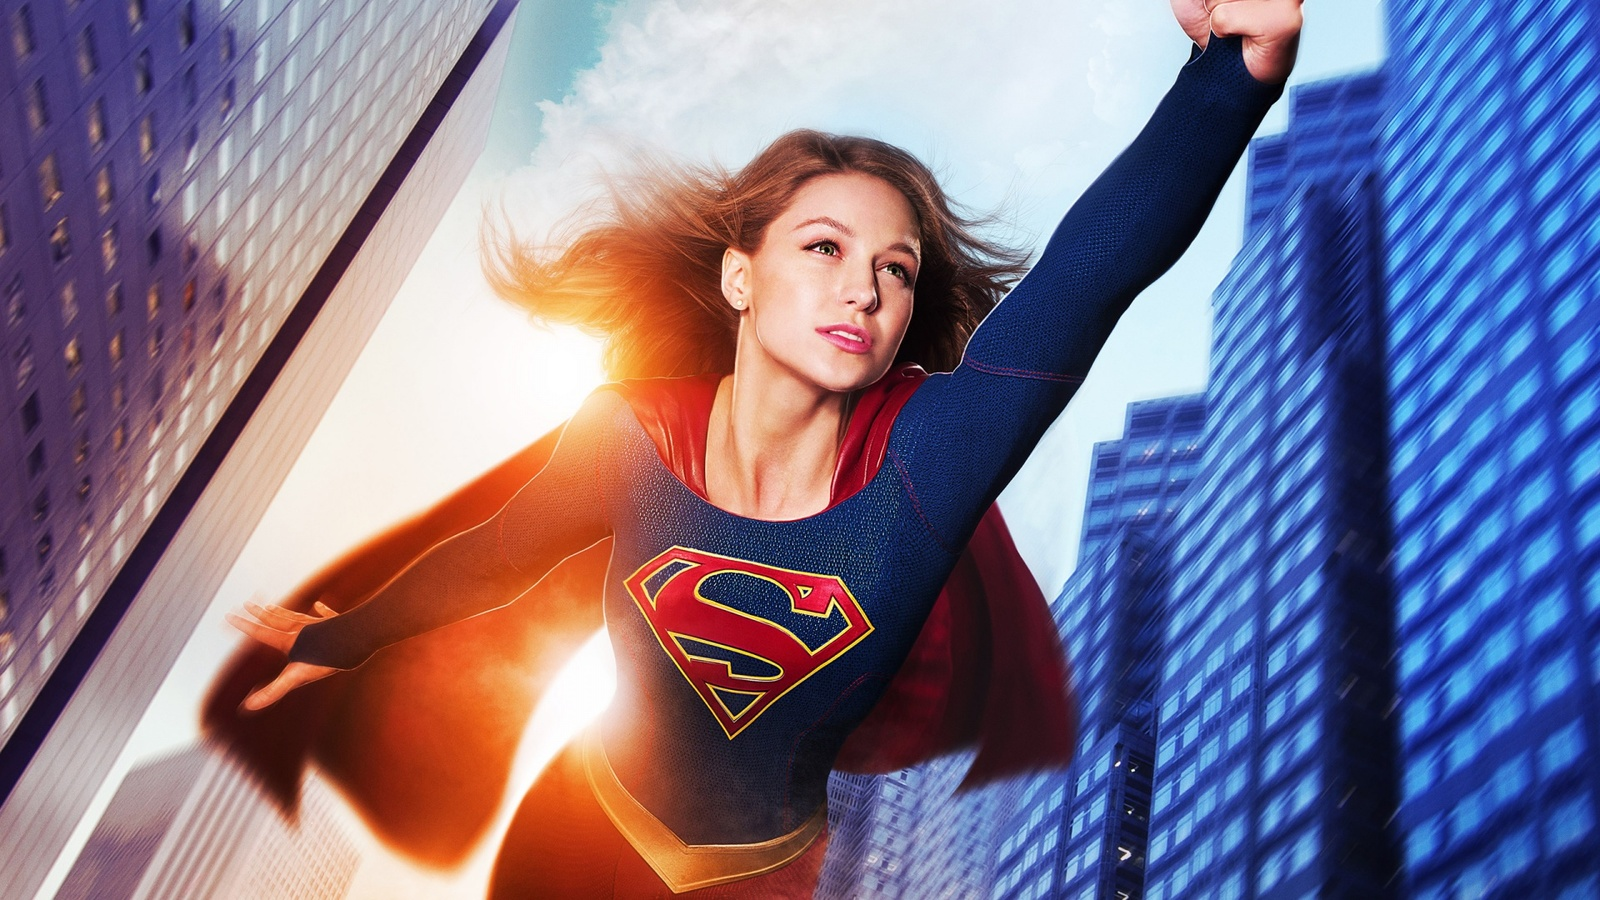 Супергёрл / Supergirl background